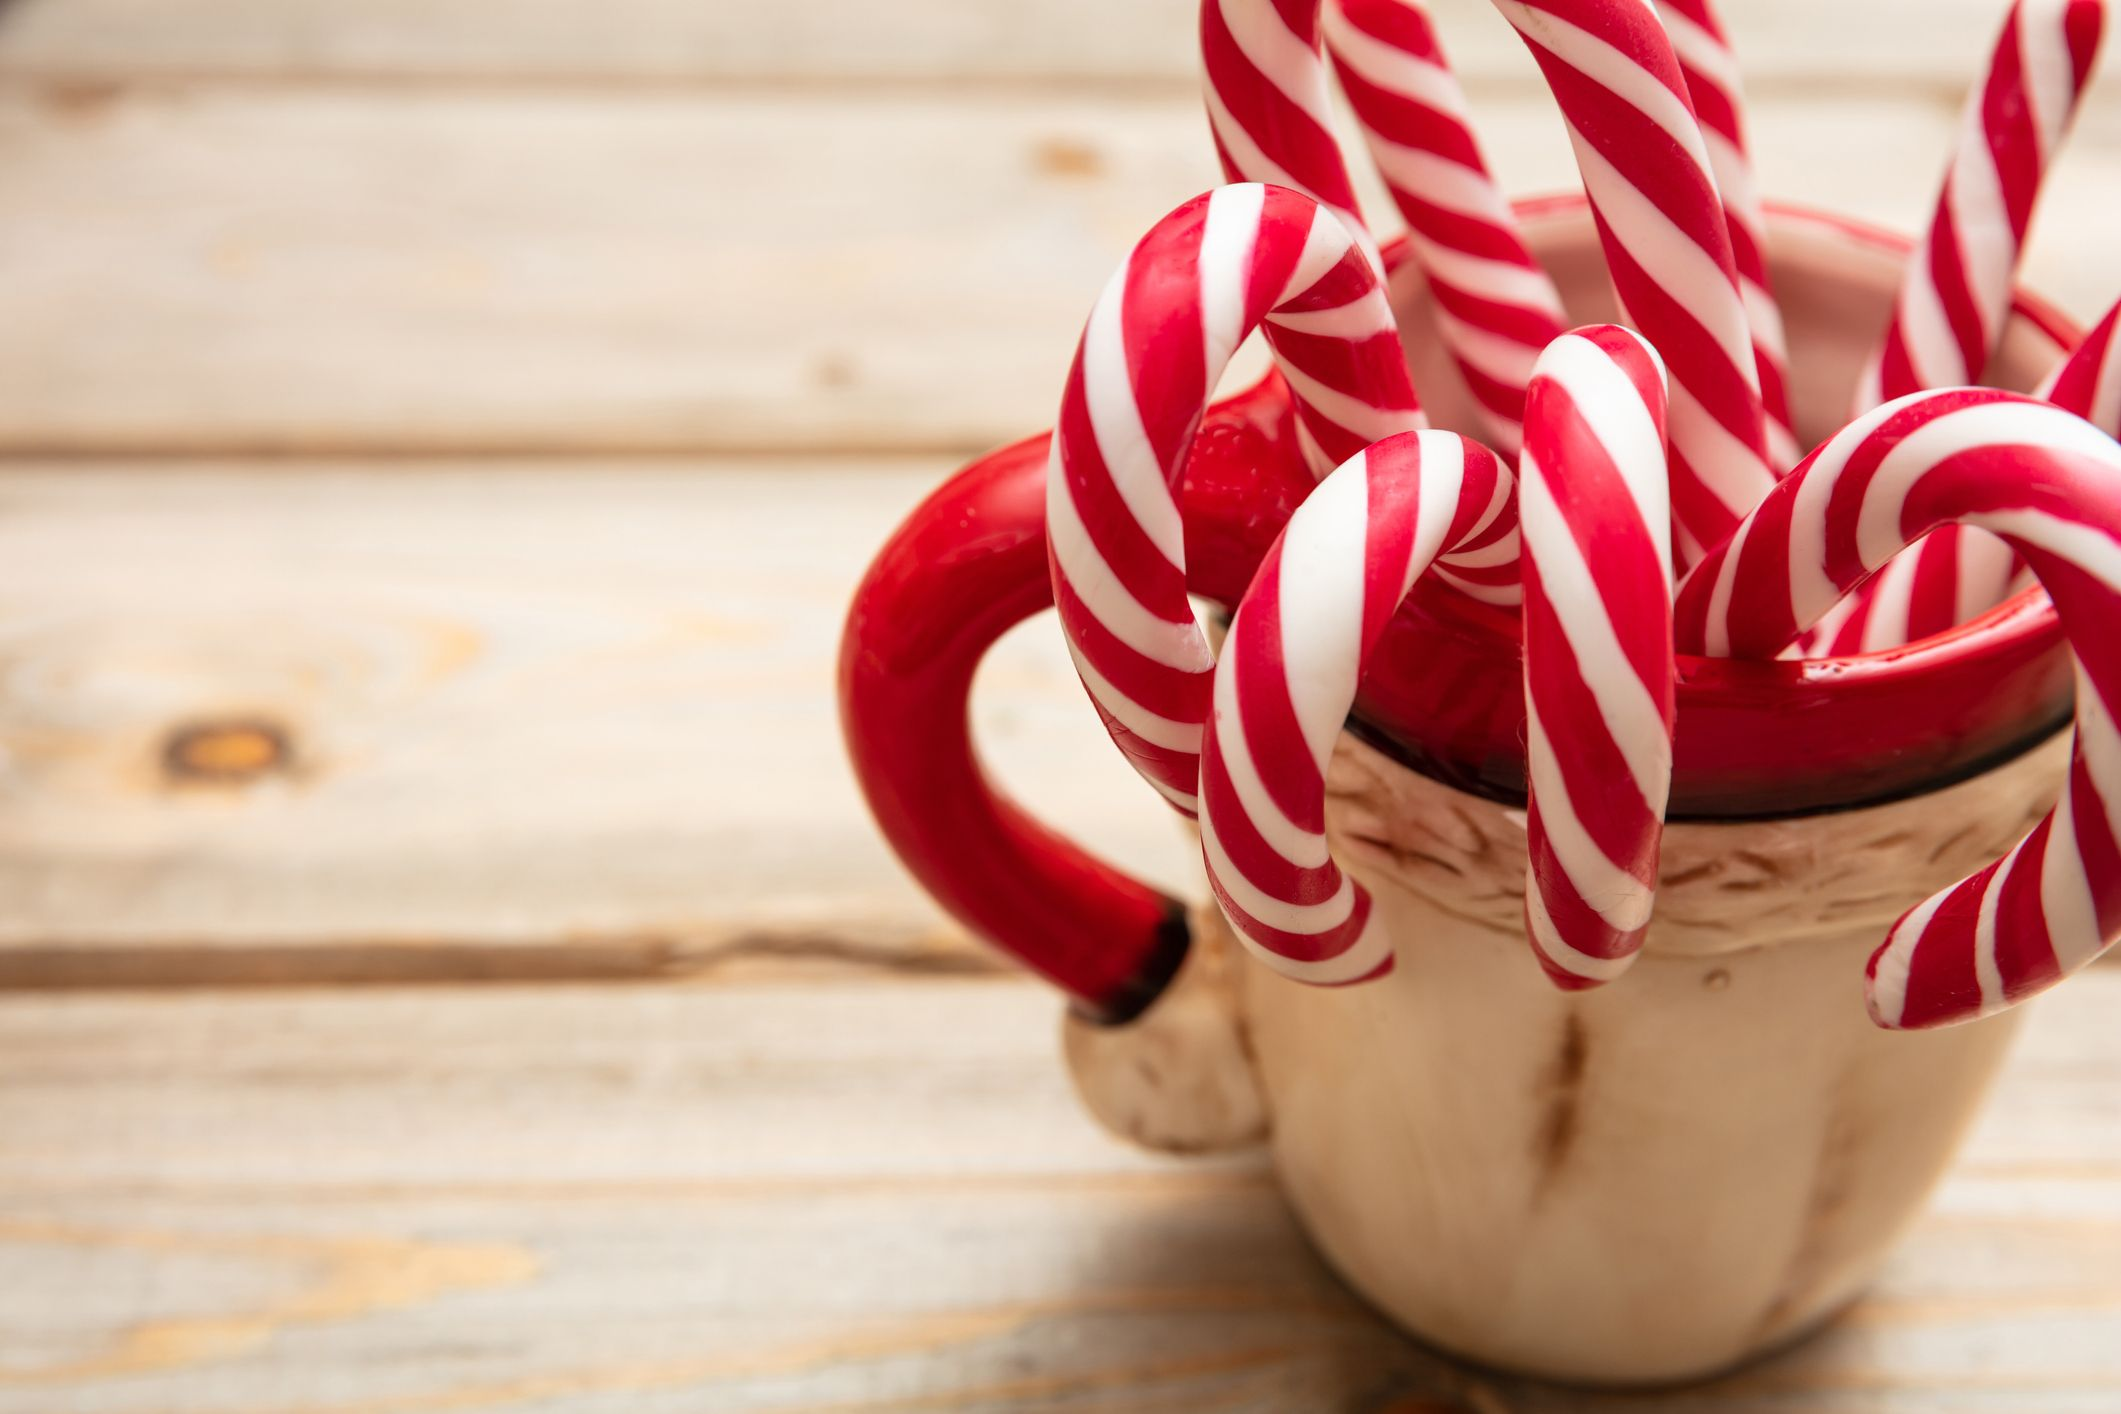 Candy Canes Banned